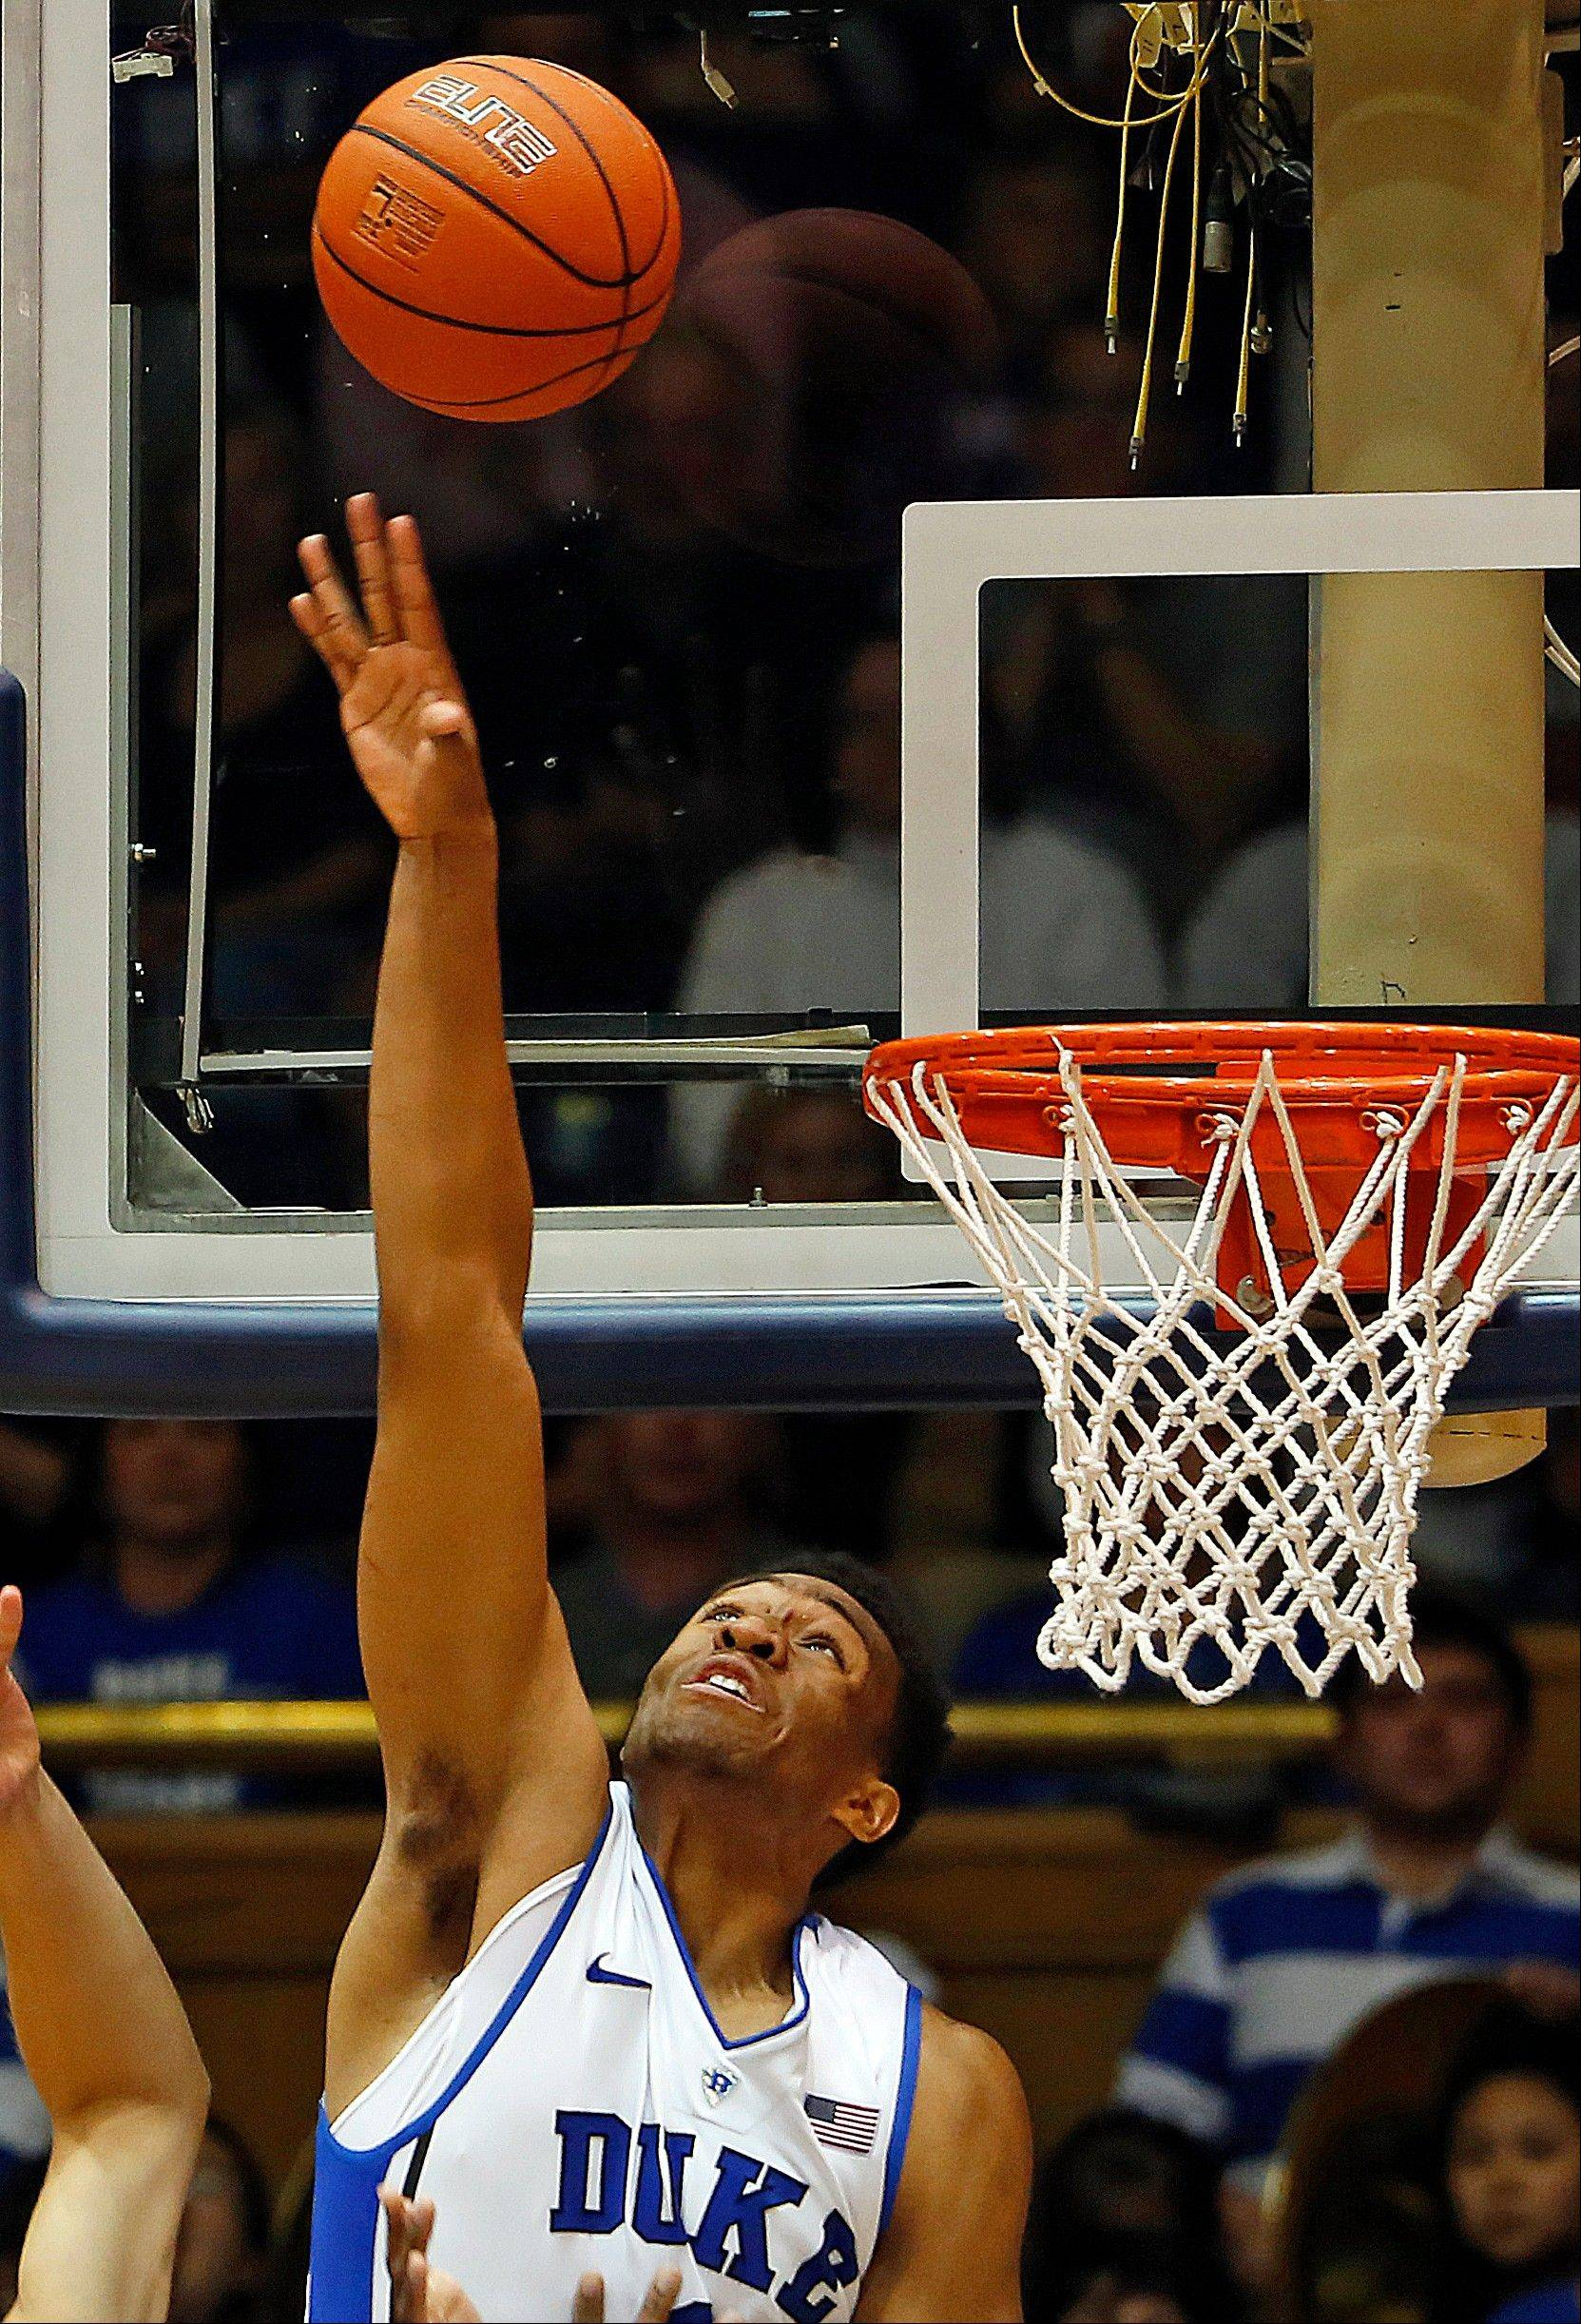 Duke�s Jabari Parker blocks a shot during the second half of Friday�s game against Davidson in Durham, N.C. Duke won 111-77.